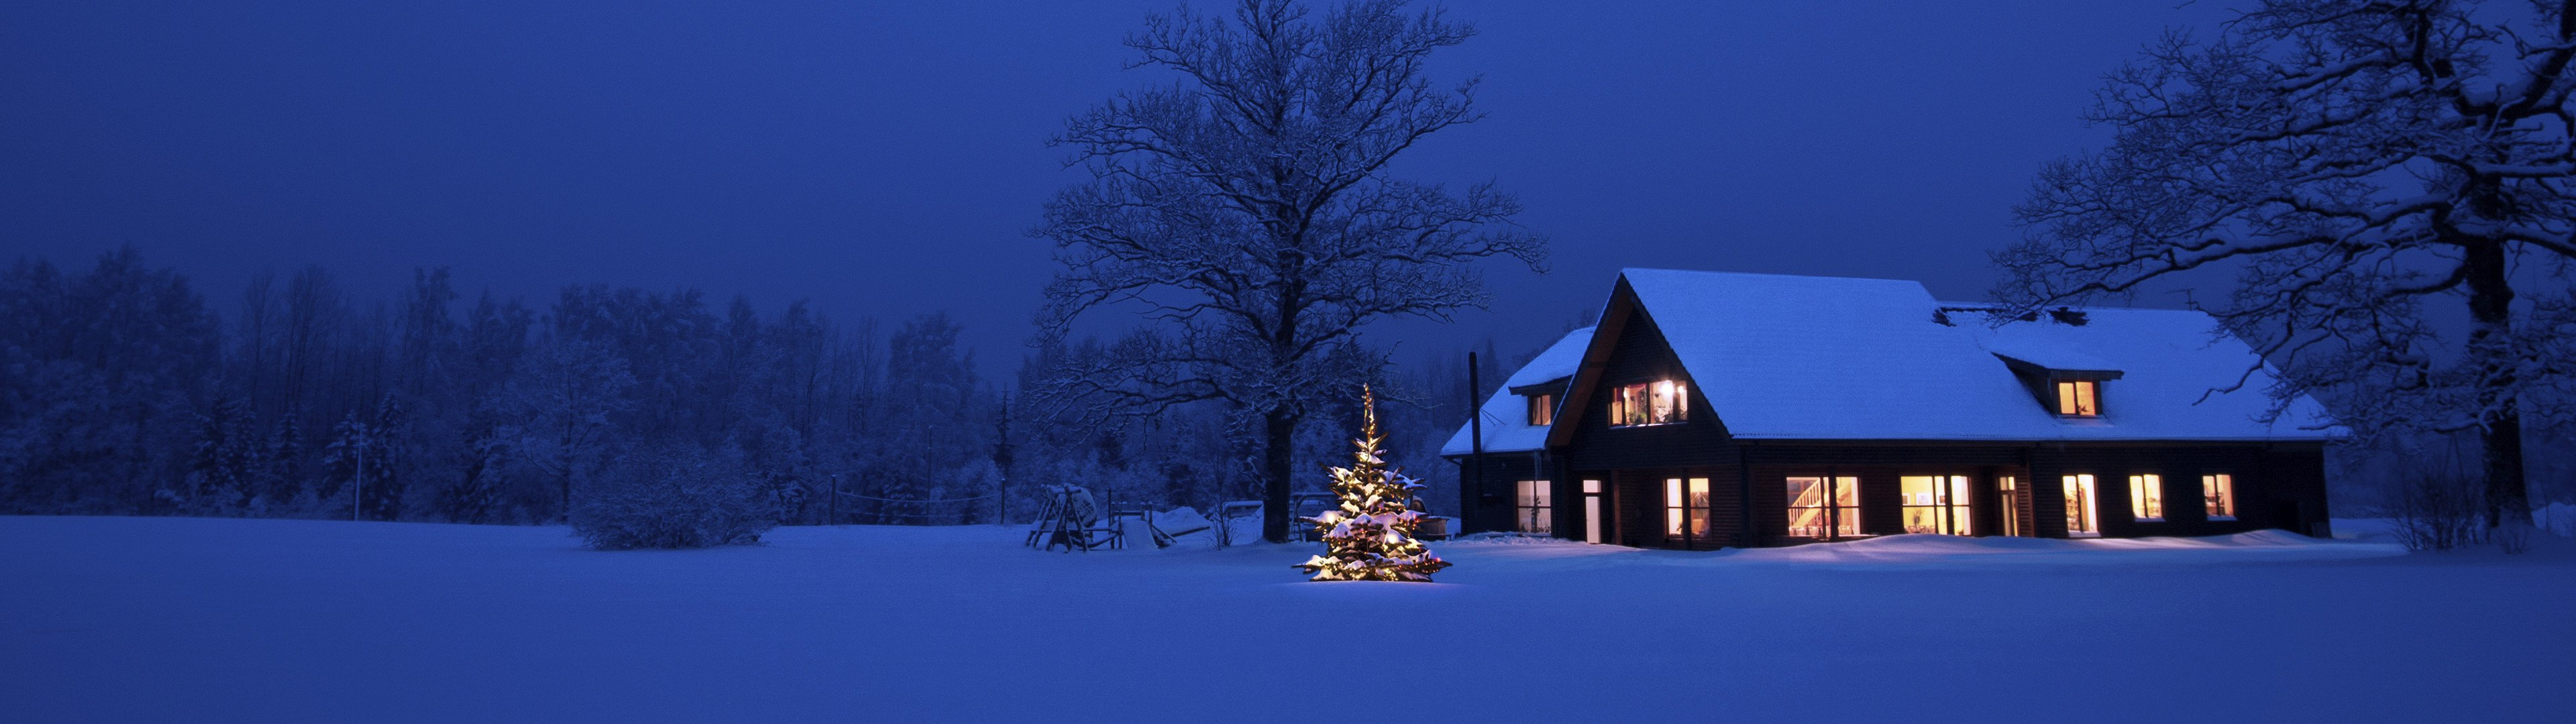 Christmas Tree and Cozy House With Snow Outside wallpaper